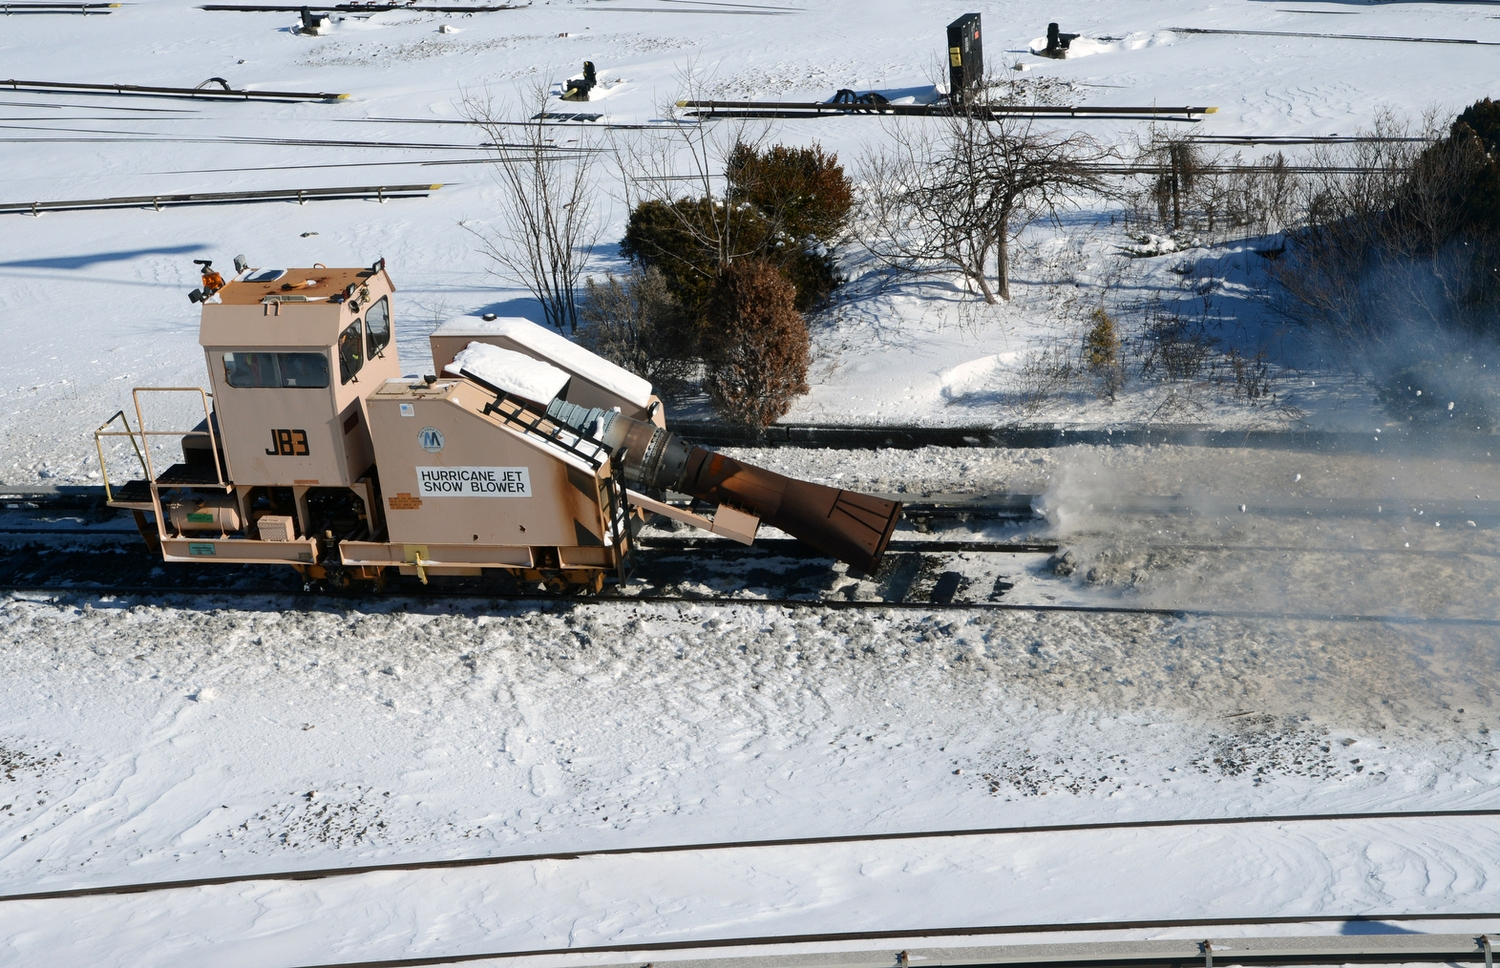 A Hurricane Jet Snow Blower clears a track in the Coney Island Yard. Photo: Marc A. Hermann / MTA New York City Transit